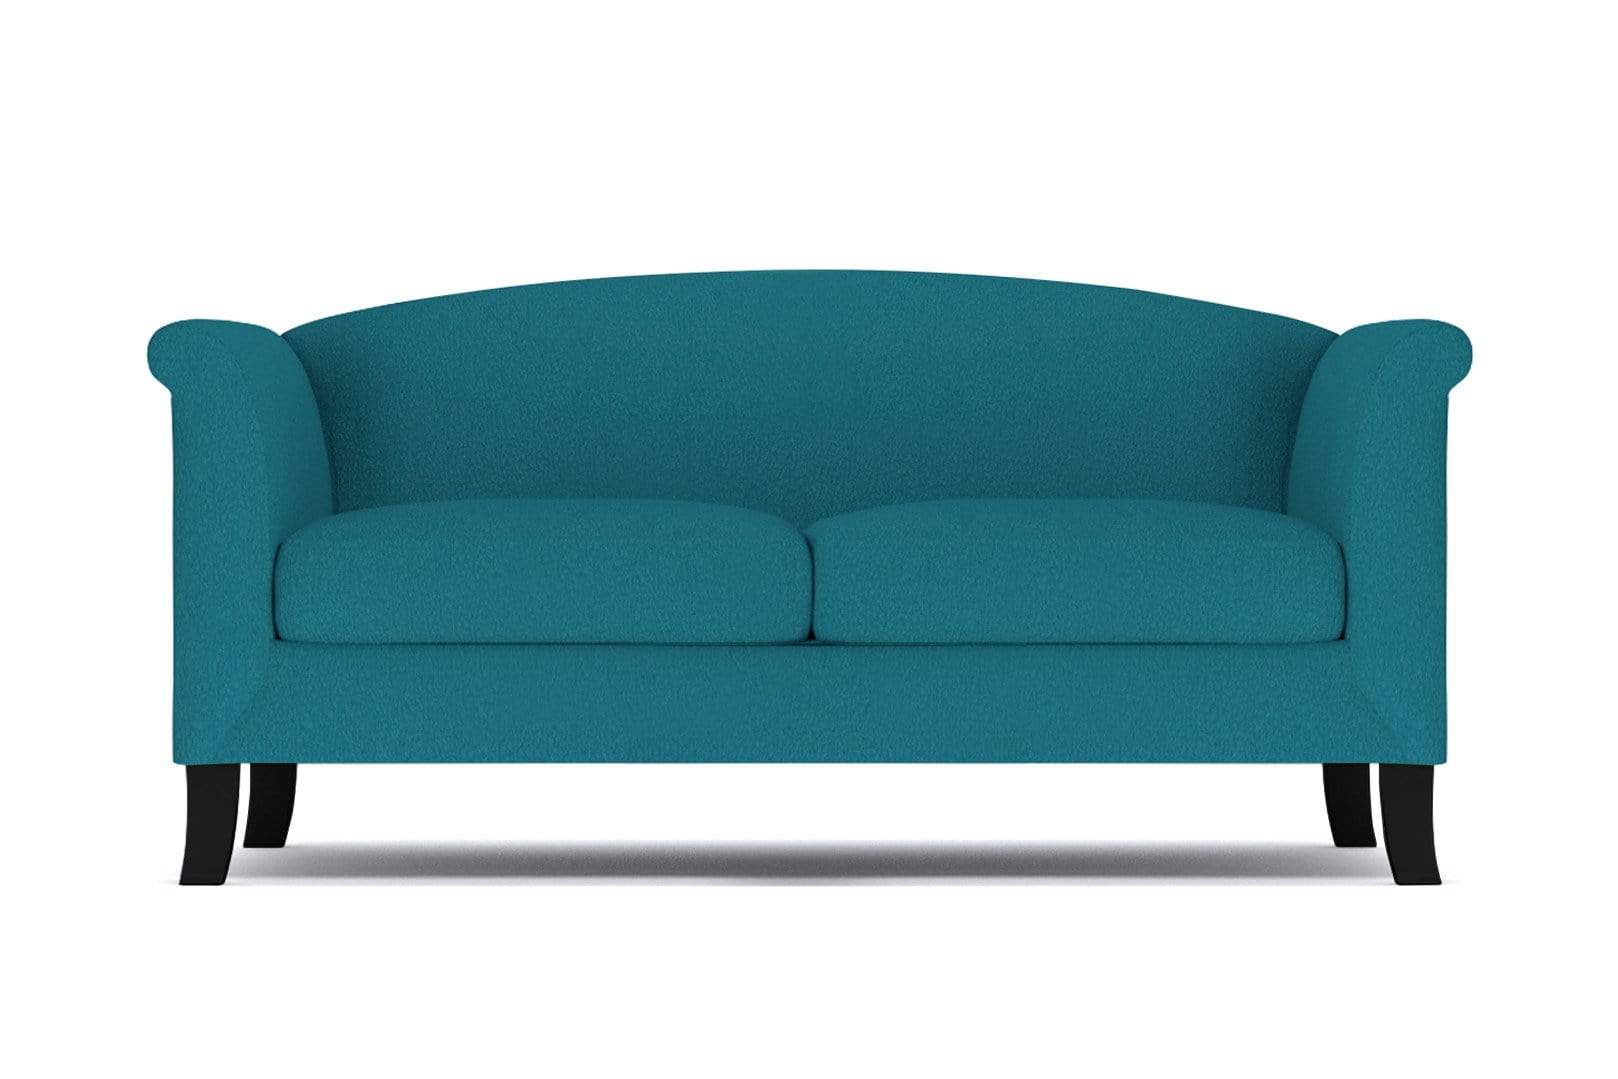 Albright_Apartment_Size_Sofa__Blue___Small_Space_Modern_Couch_Made_in_the_USA__Sold_by_Apt2B